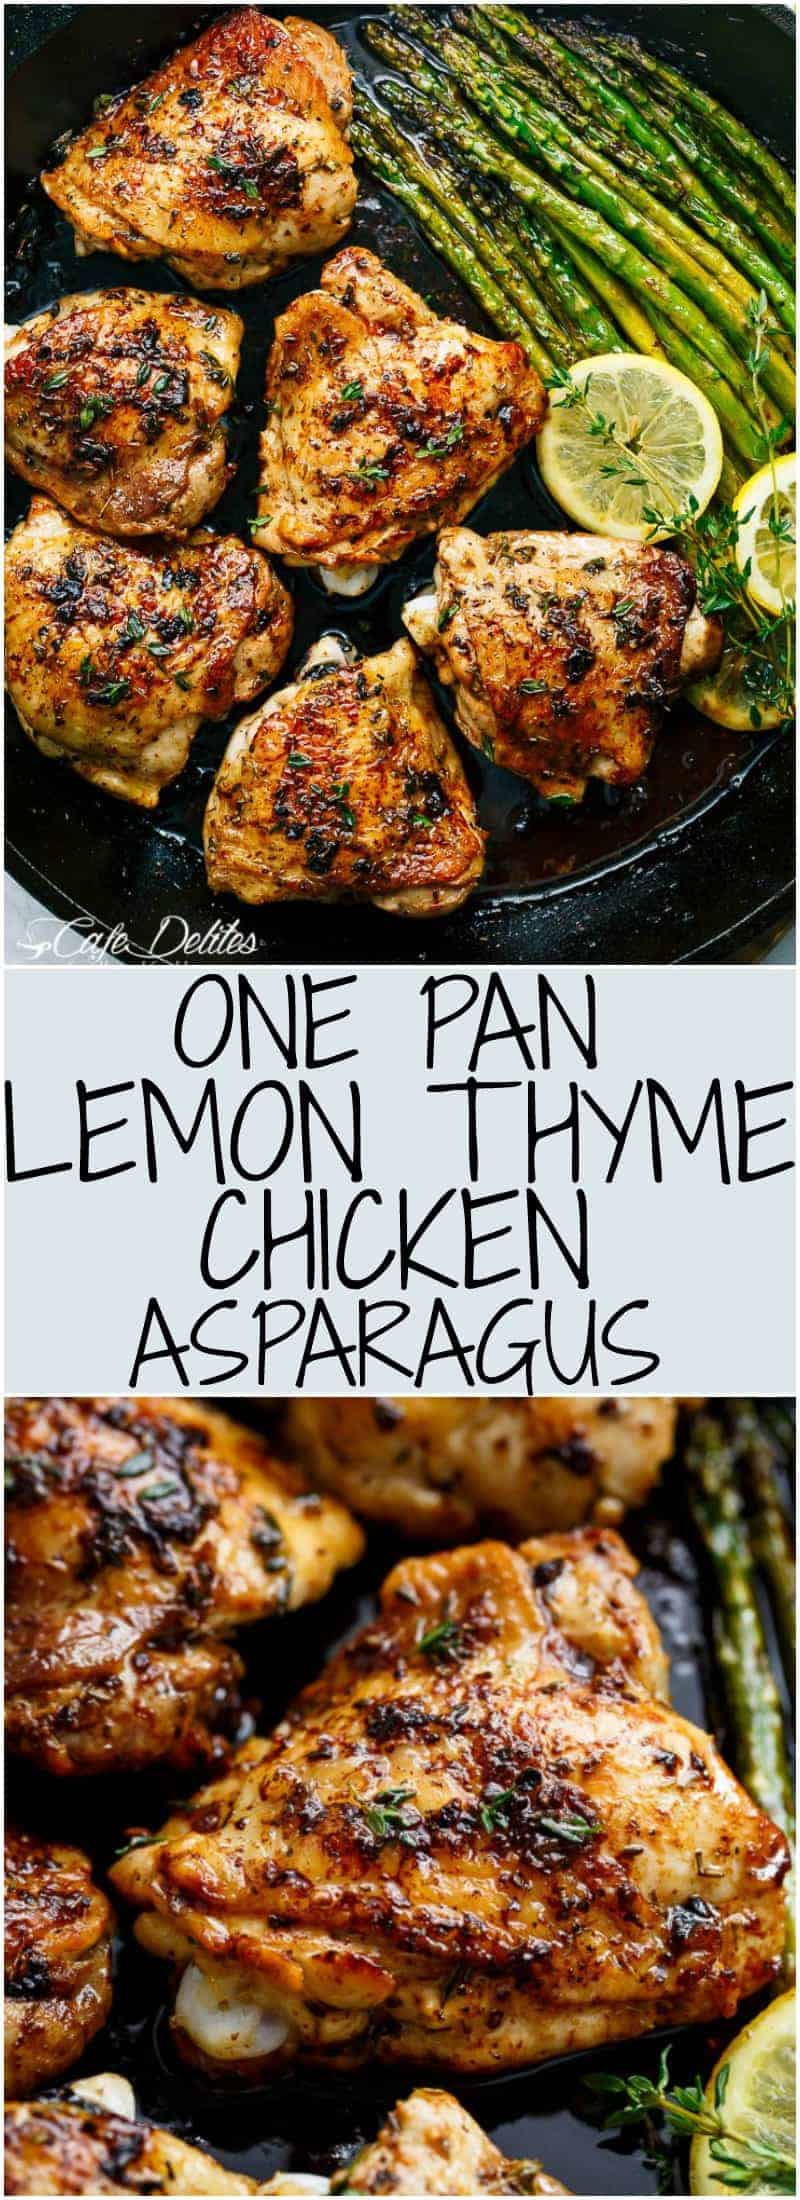 One Pan Lemon Thyme Chicken Asparagus is a super easy 'throw-together' recipe. Healthy and made with only a handful of uncomplicated ingredients!   https://cafedelites.com